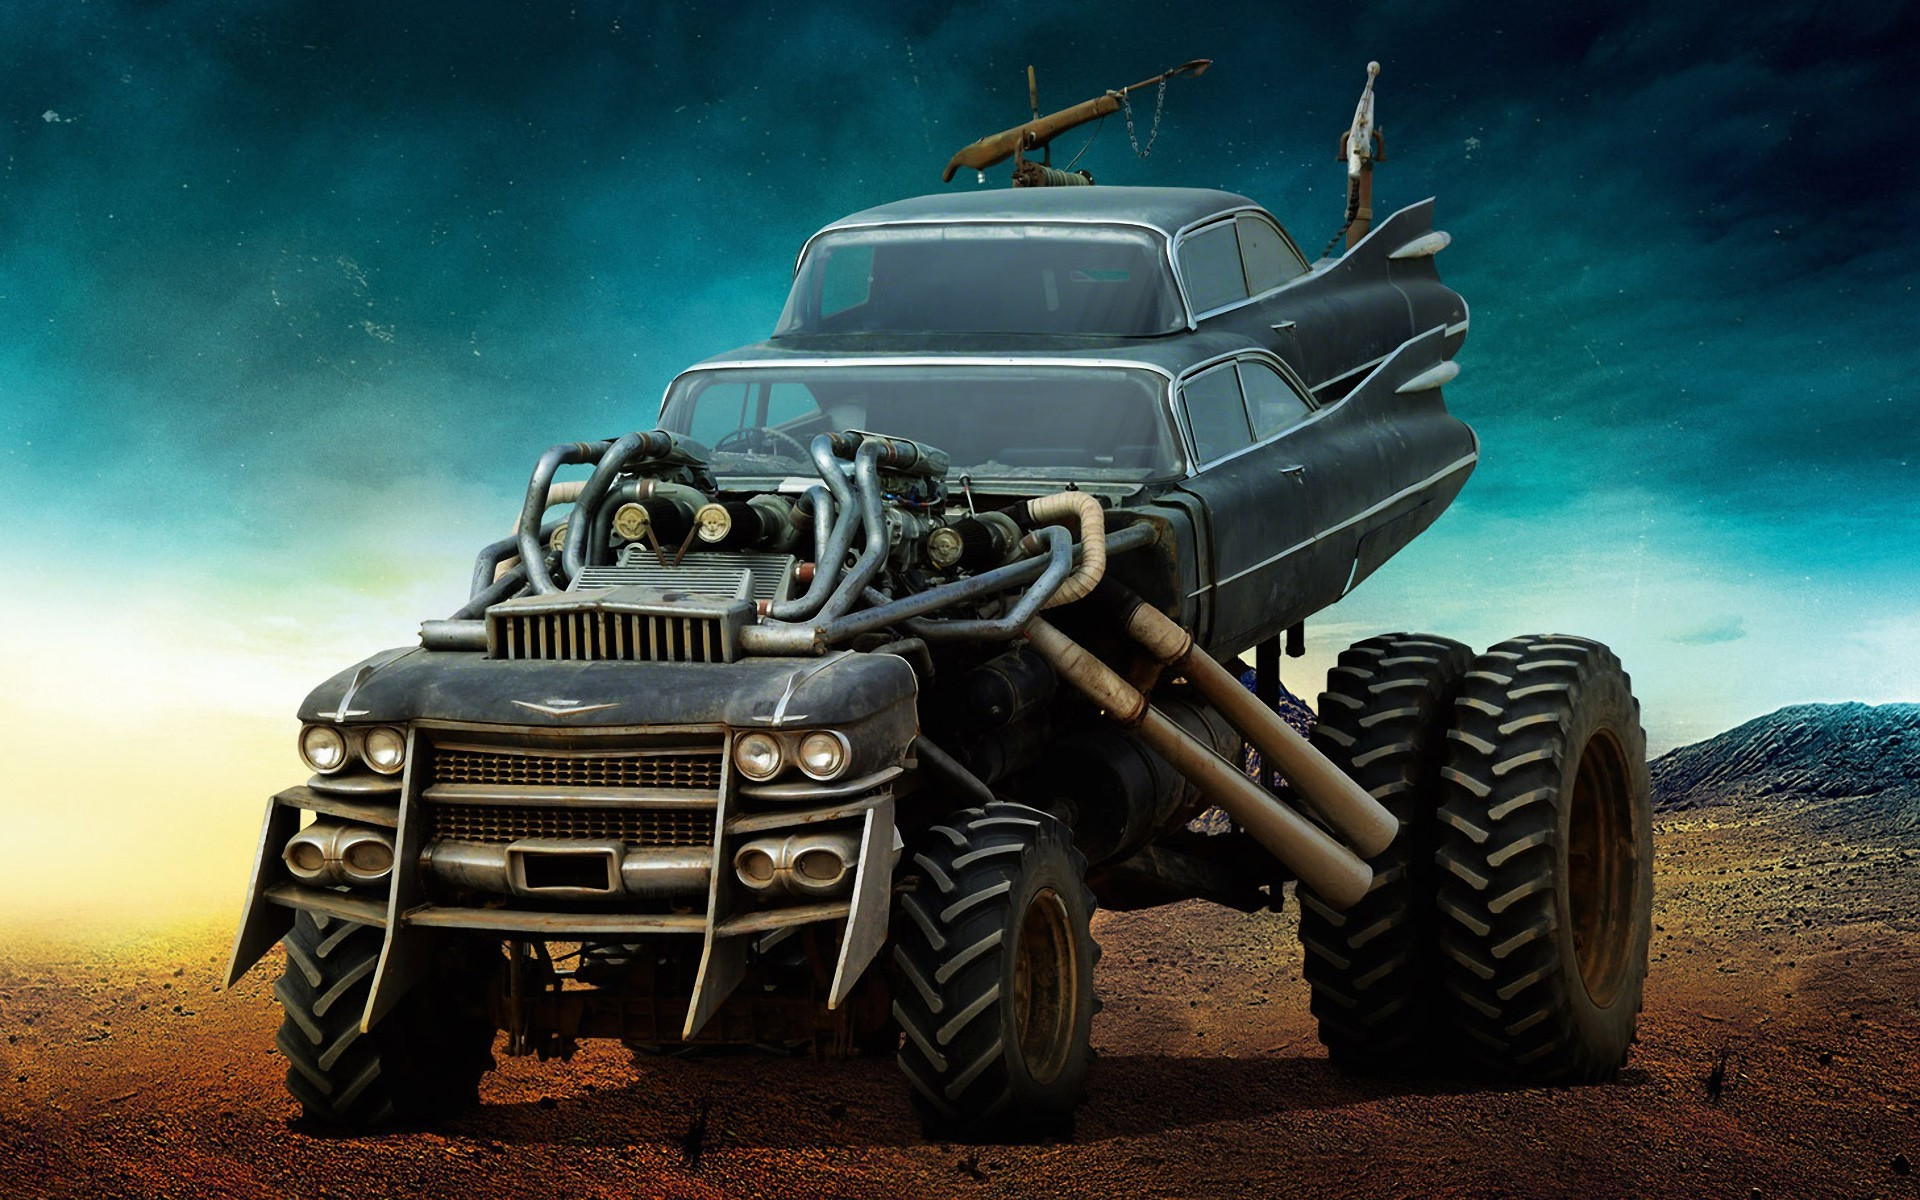 Retro Car Home Wallpaper Mad Max The Gigahorse Wallpapers Hd Desktop And Mobile